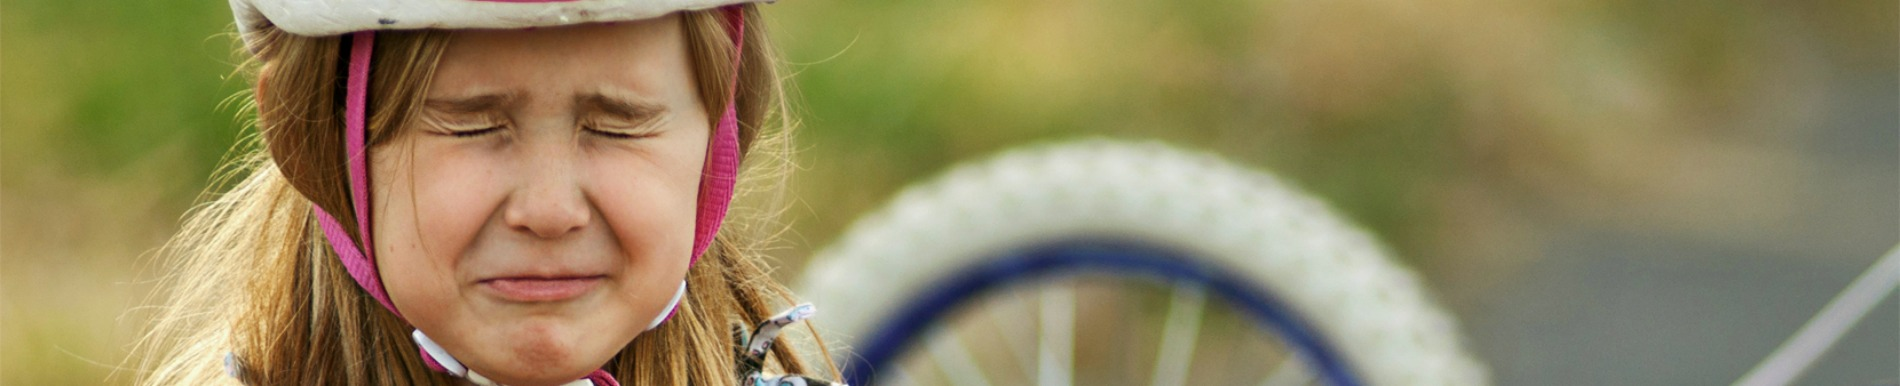 https://www.healthychildren.org/SiteCollectionImage-Homepage-Banners/bike_fall_header.jpg